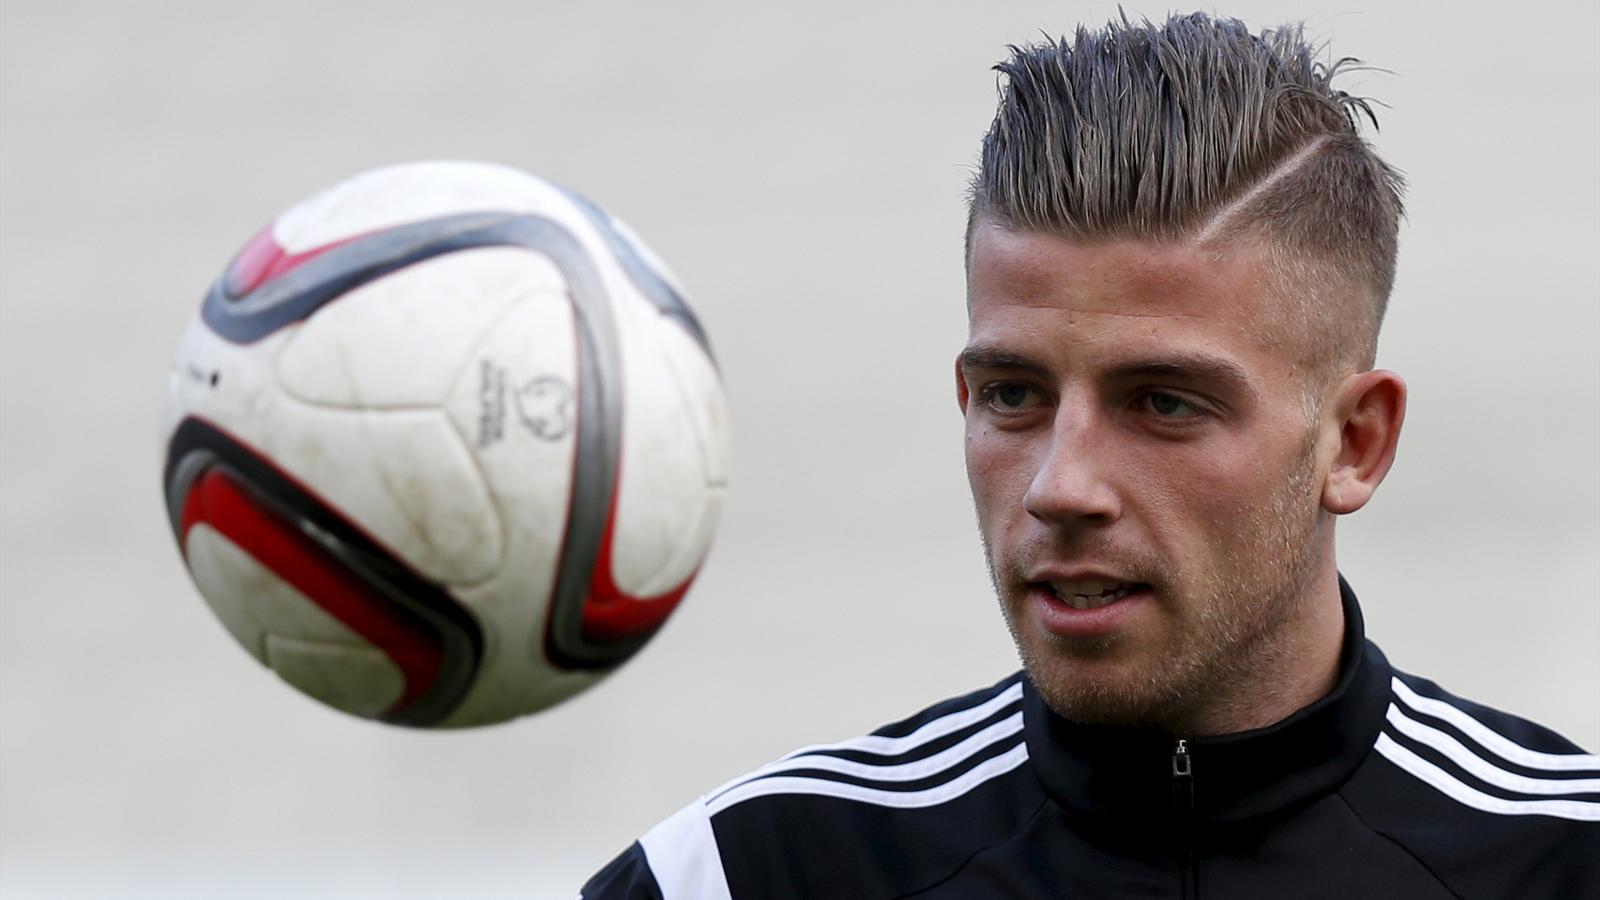 Southampton expect to sign Toby Alderweireld could issue legal